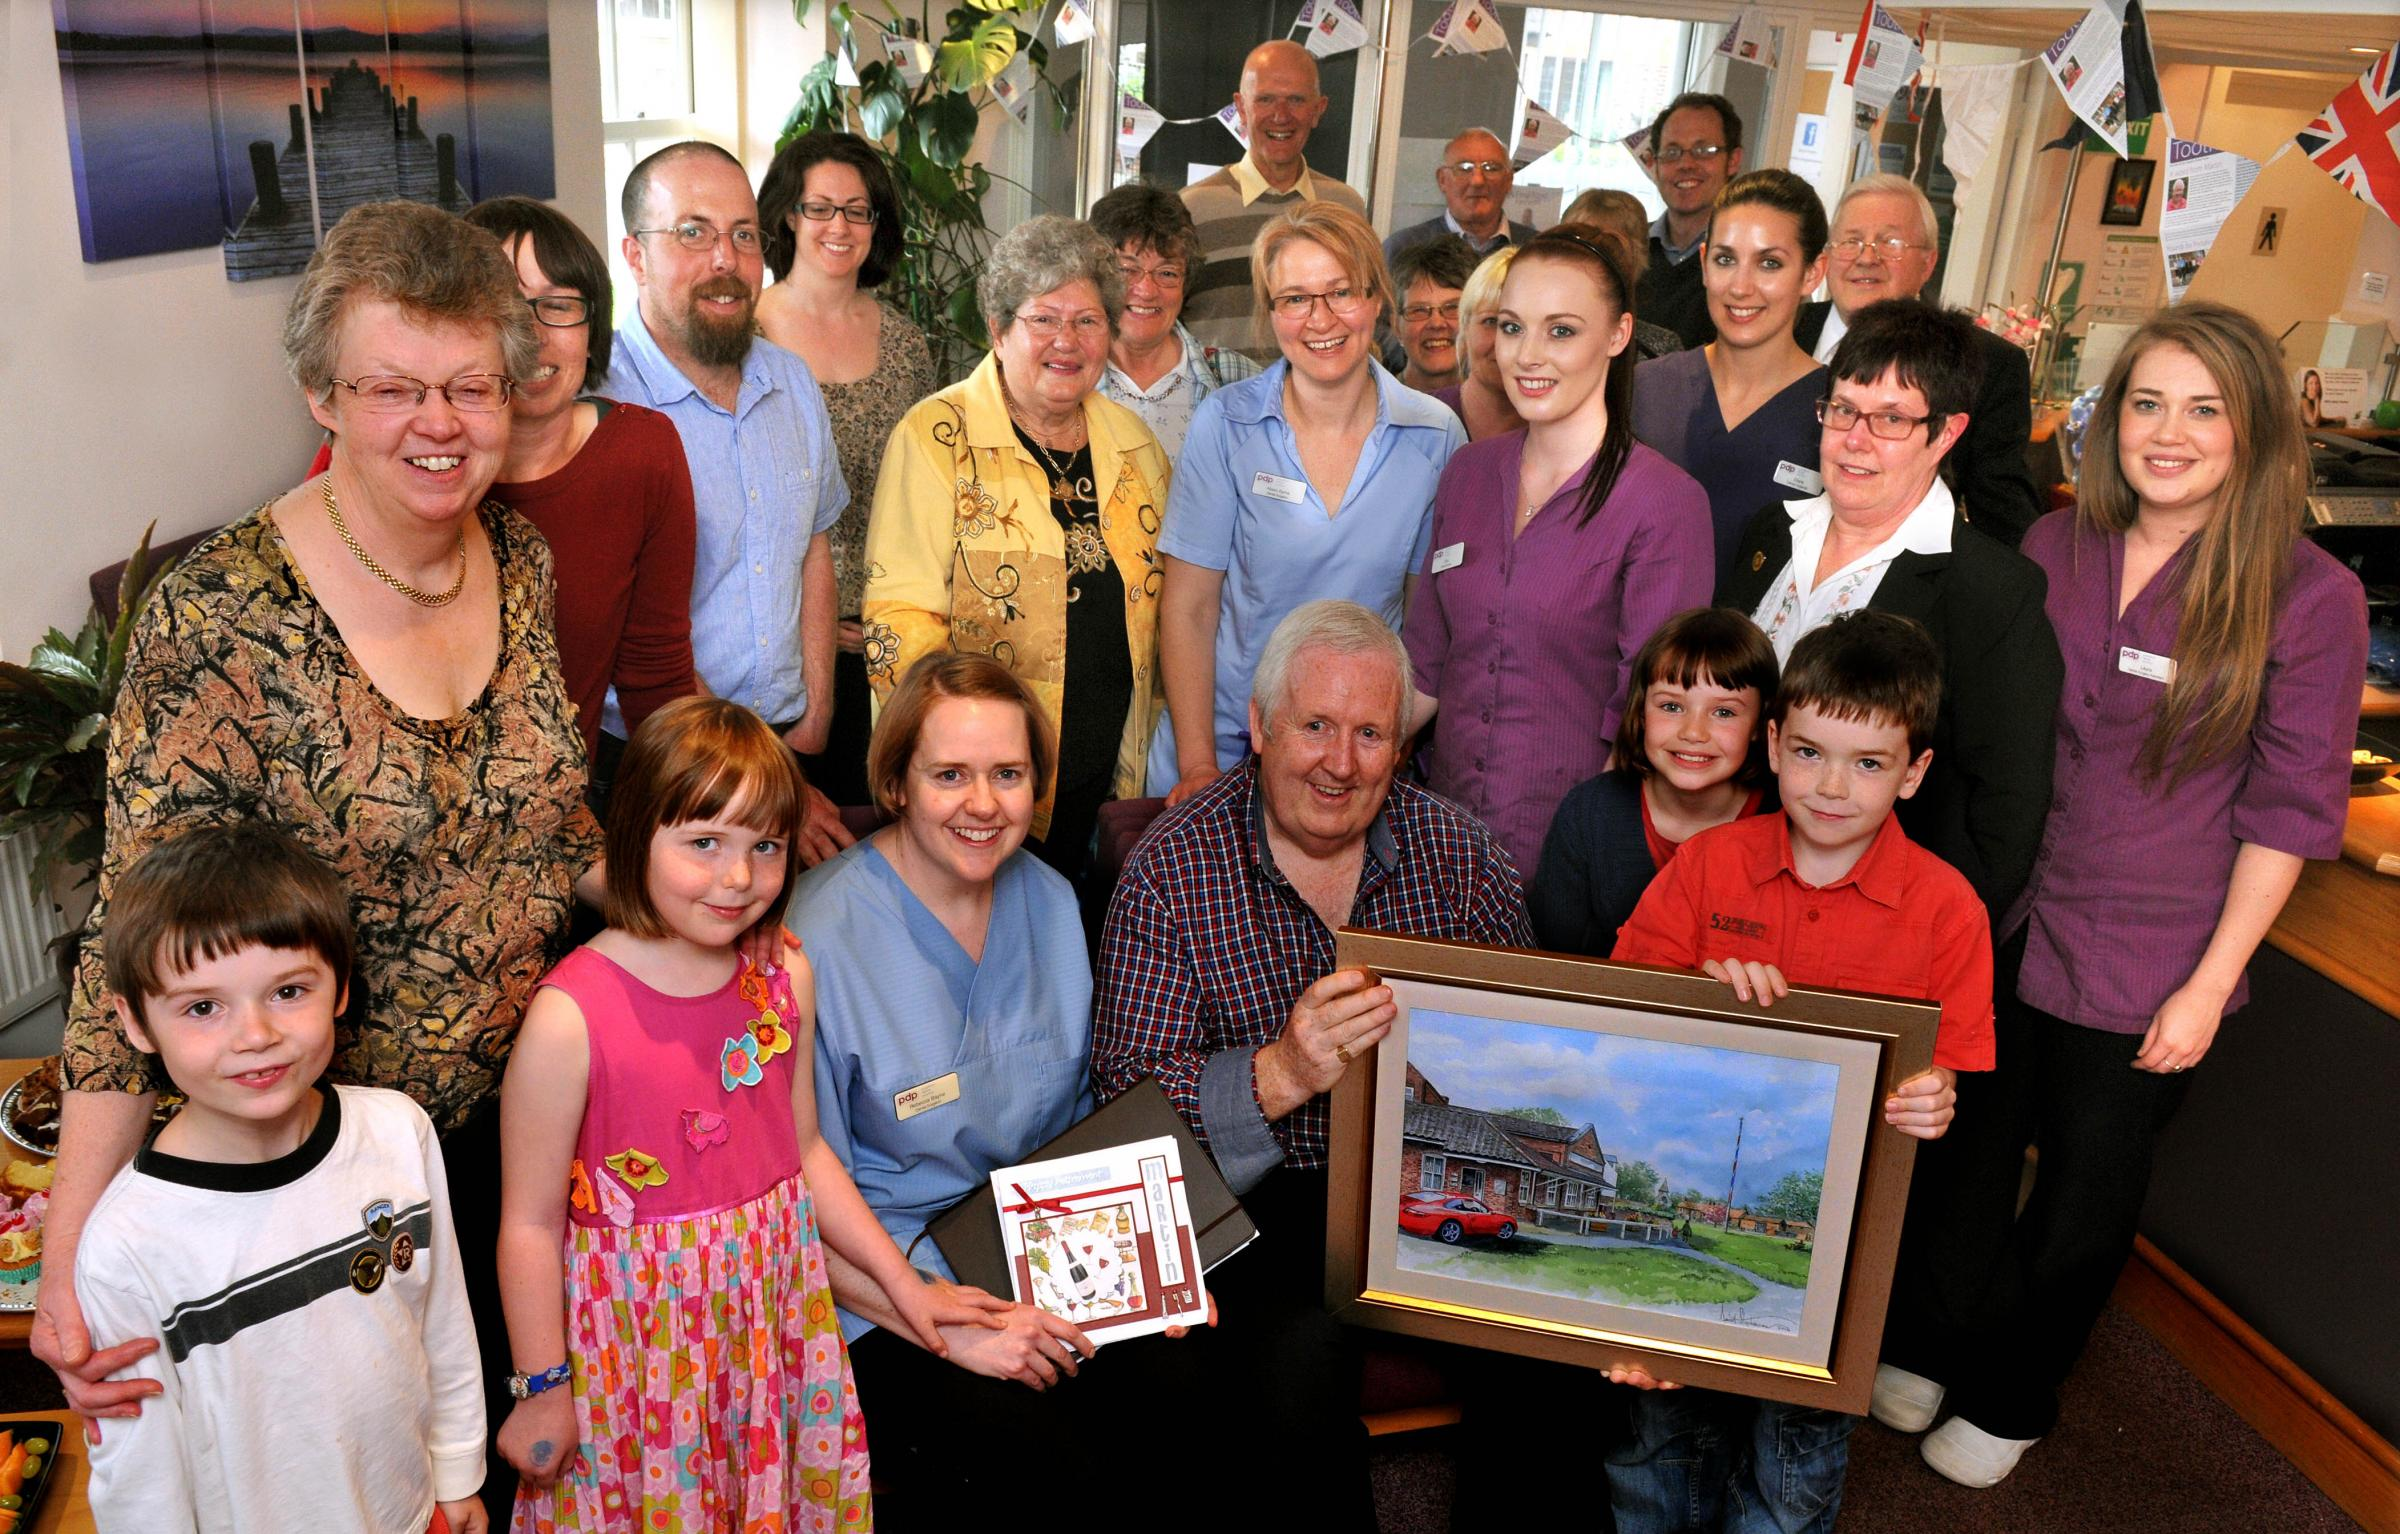 Dental surgeon Martin Bayne who is retiring after 42 years at Poppleton Dental Practice celebrates with family and colleagues. Picture: Nigel Holland.